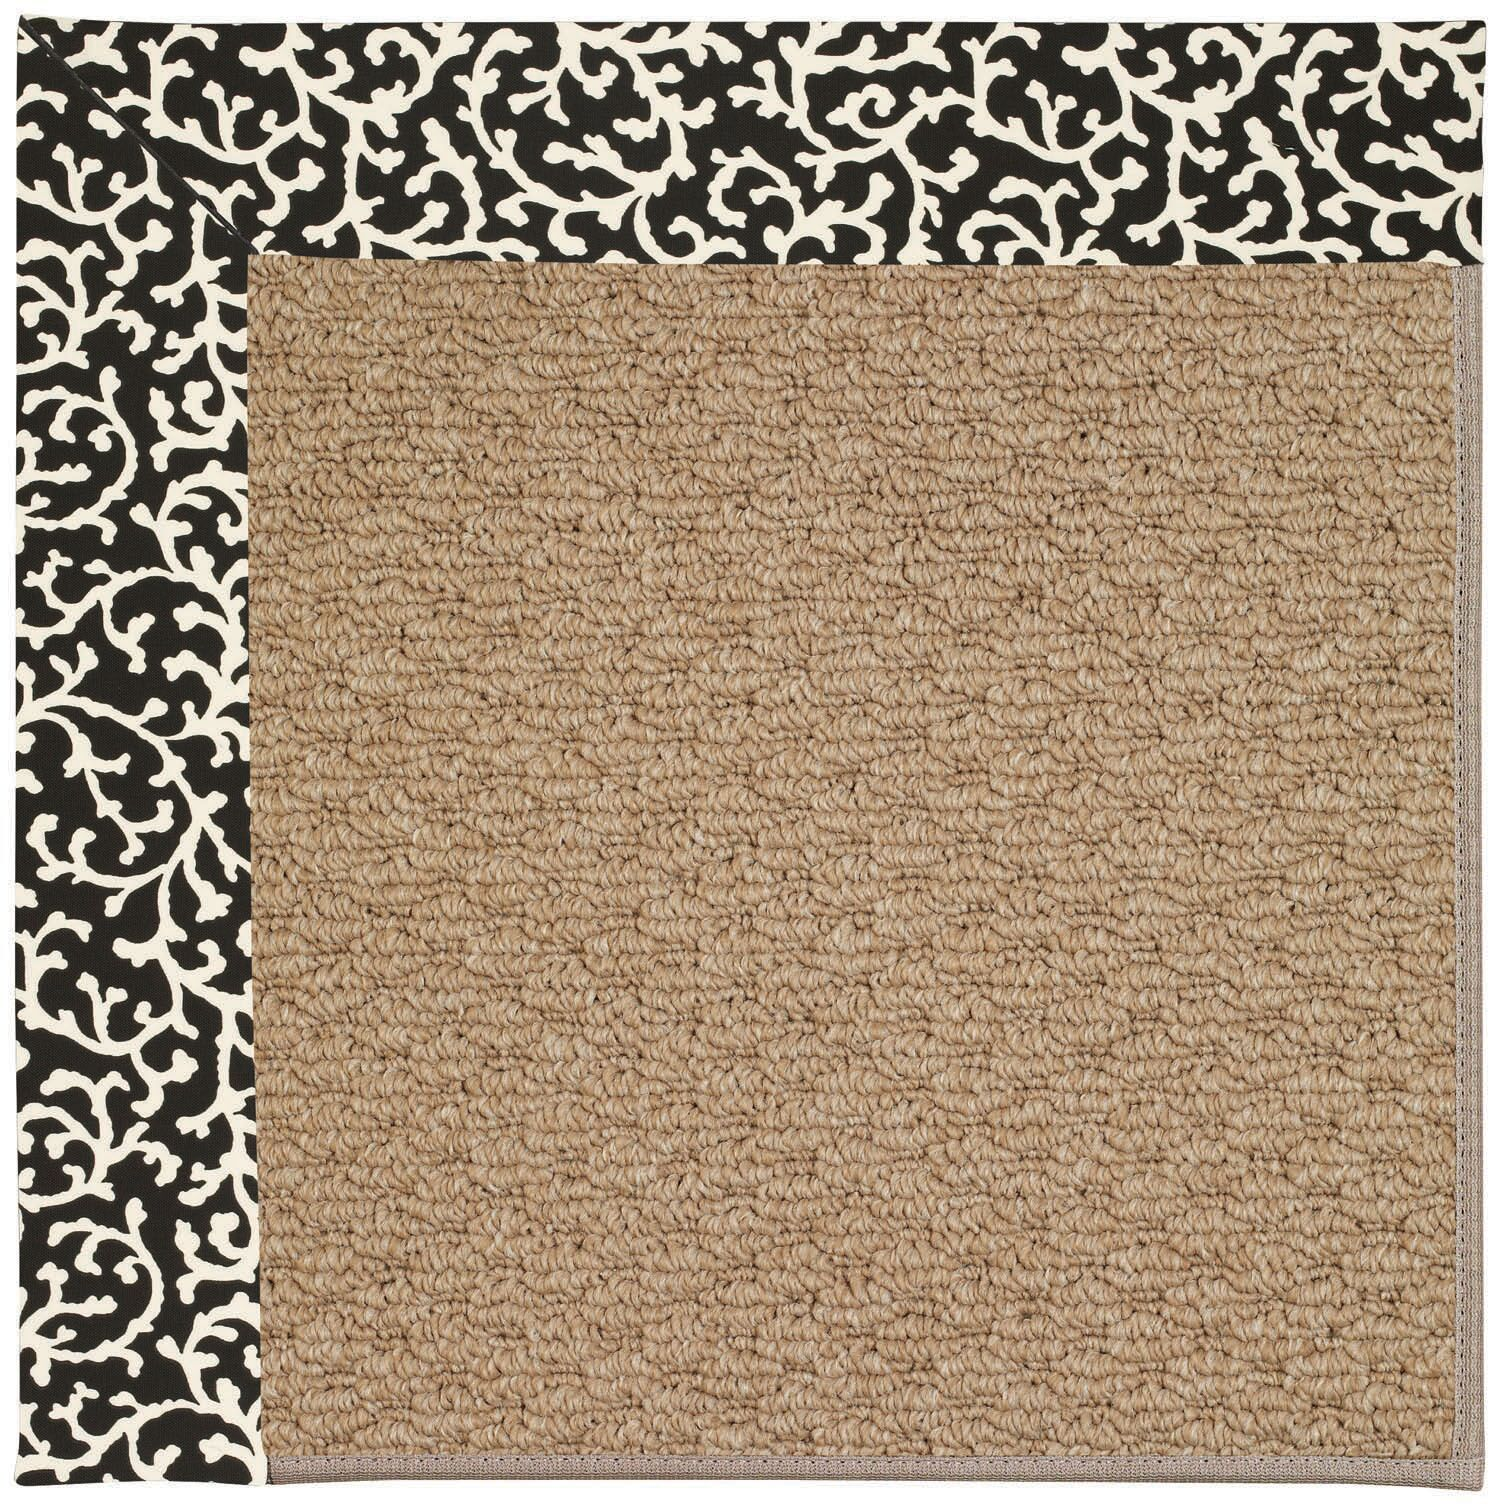 Lisle Machine Woven Cascade Indoor/Outdoor Area Rug Rug Size: Rectangle 4' x 6'